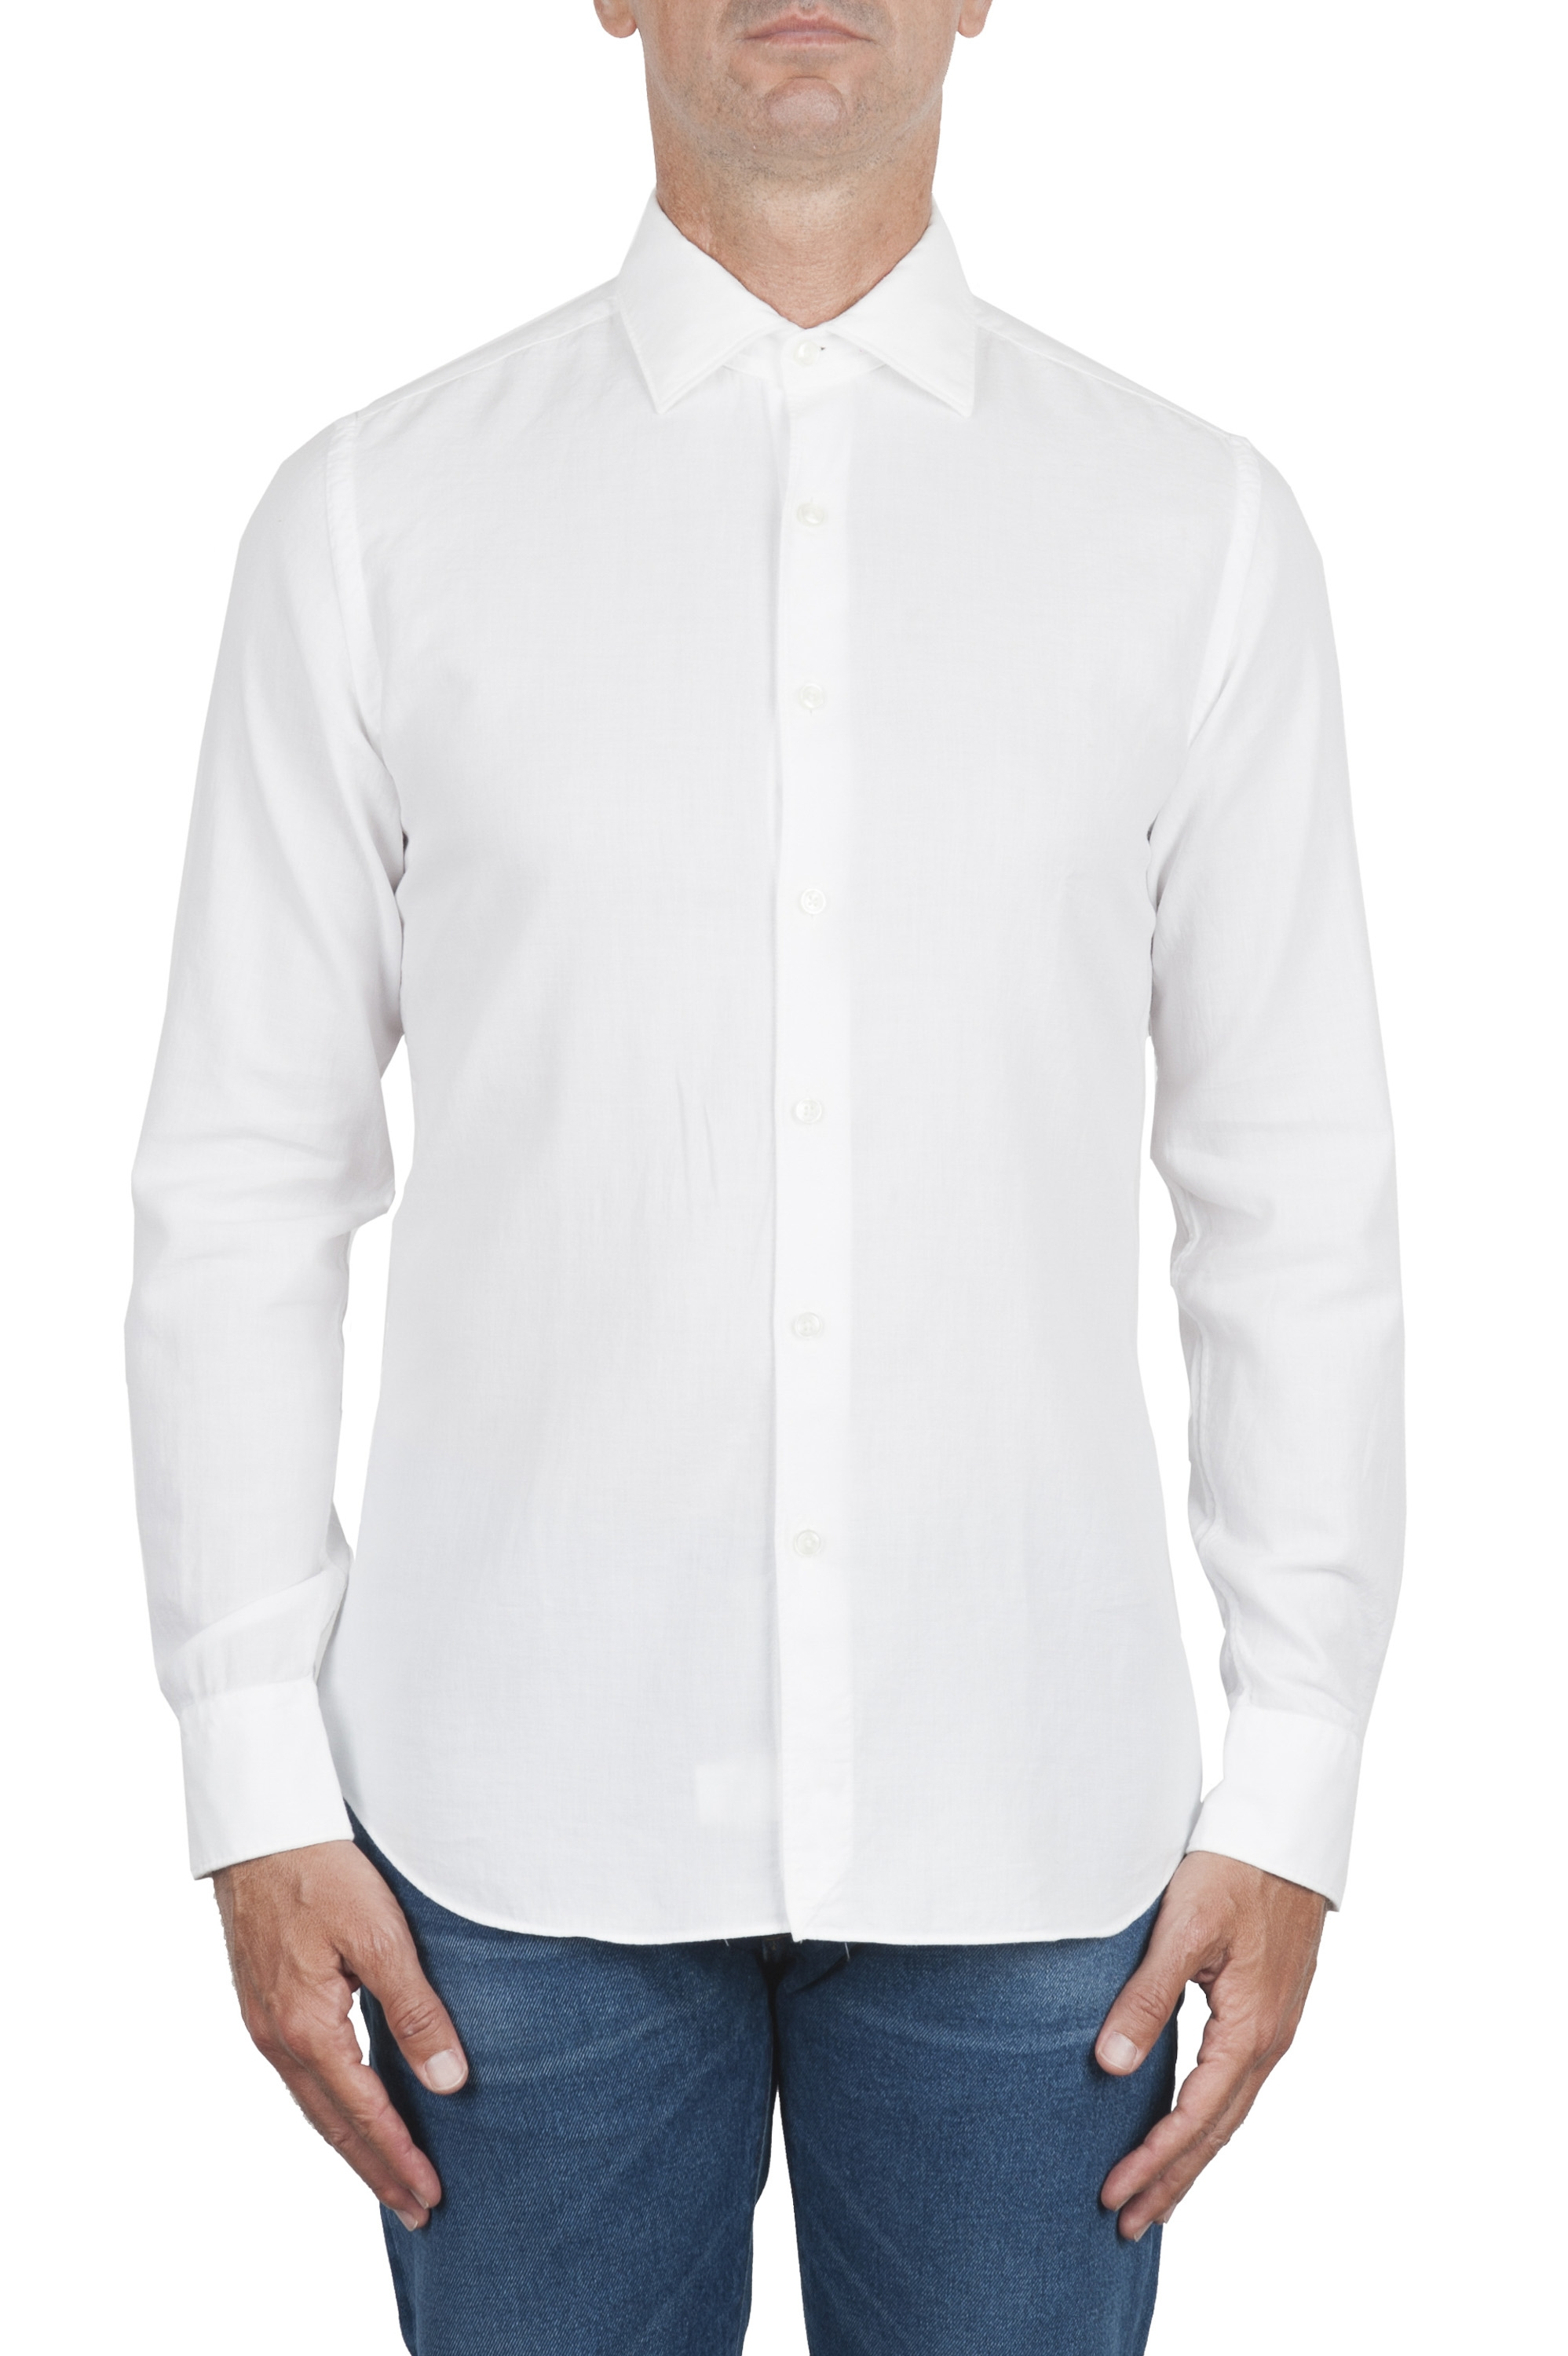 SBU 02901_2020AW White cotton twill shirt 01